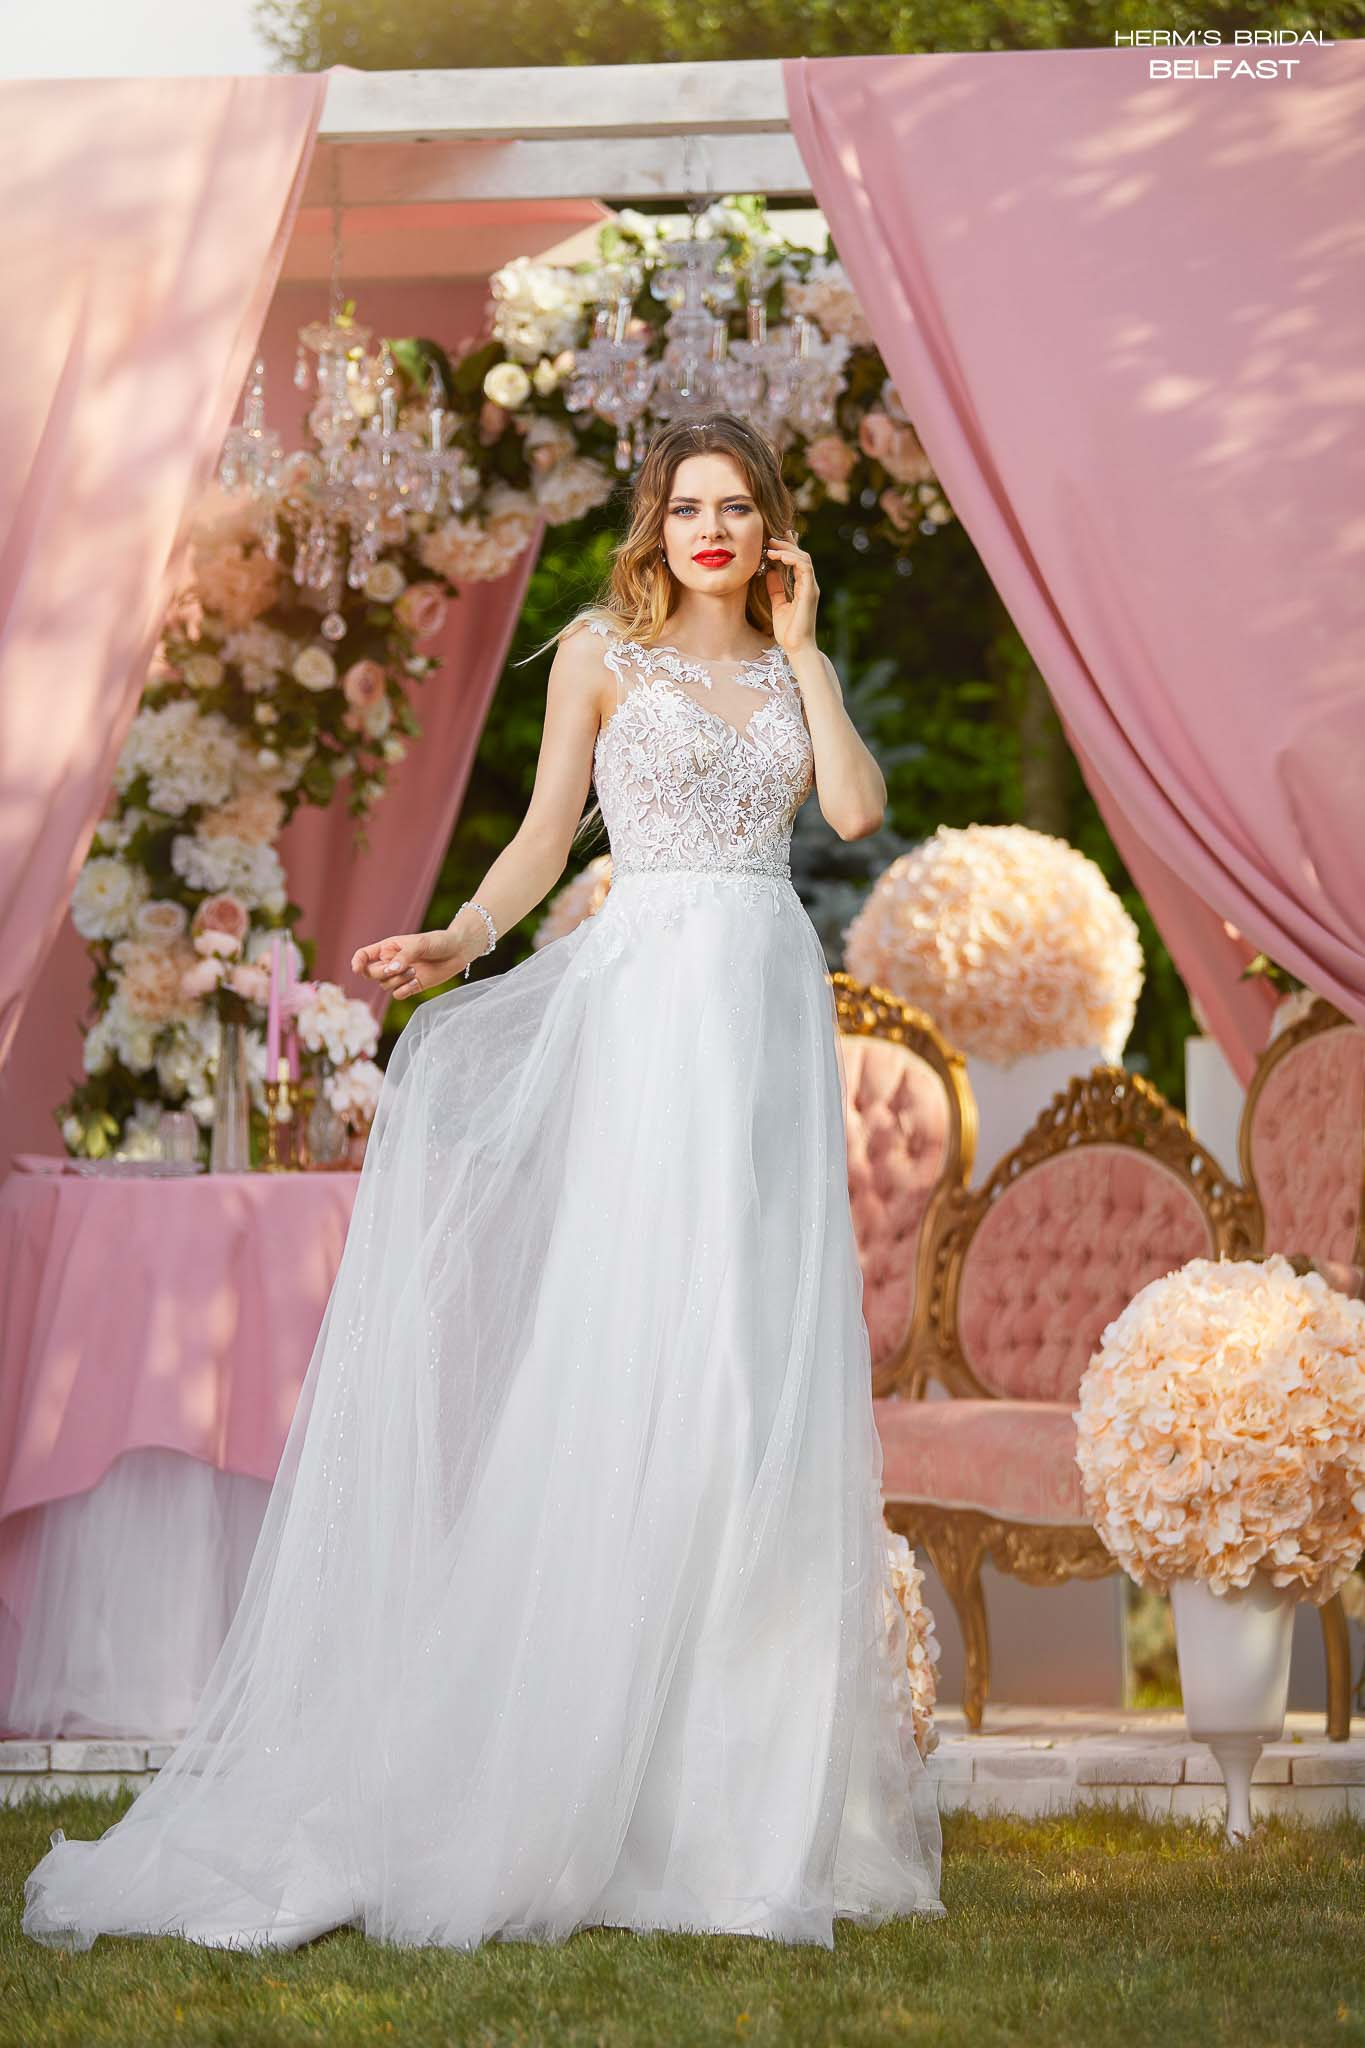 Wedding dress BELFAST - 2018 collection - Herms Bridal